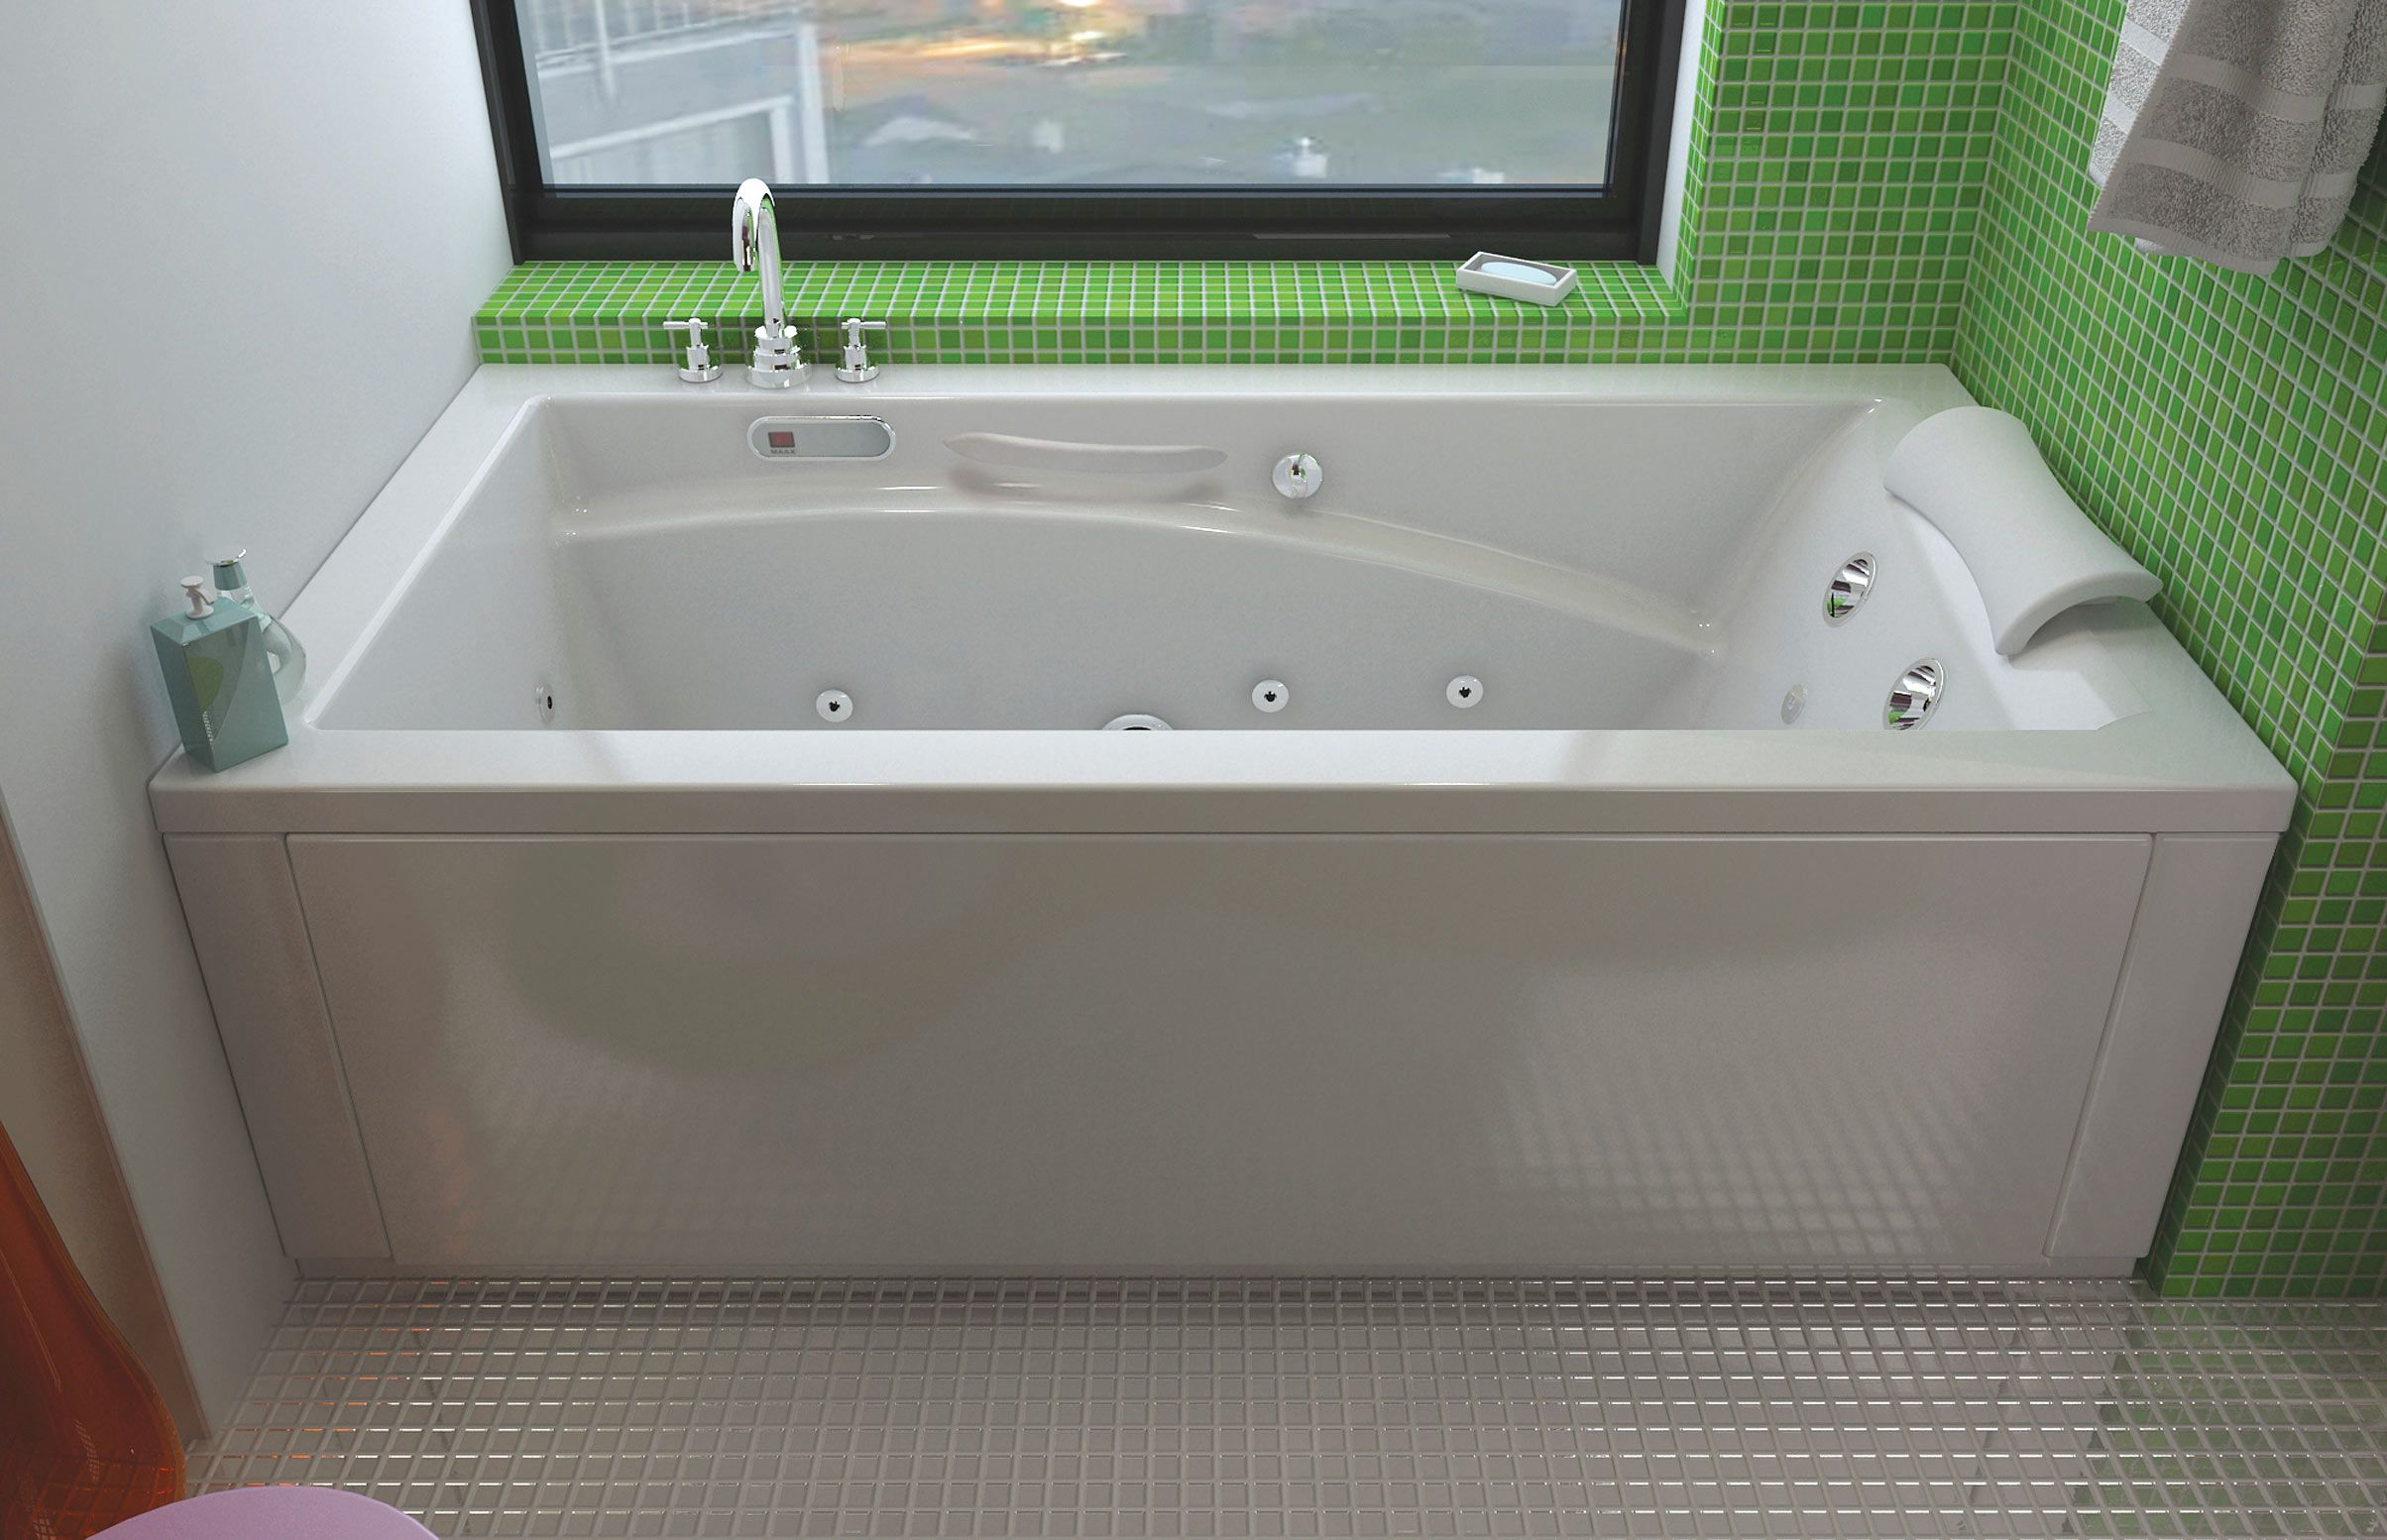 OPTIK (End Drain) Alcove or Drop-in or Undermount or bathtub - MAAX ...